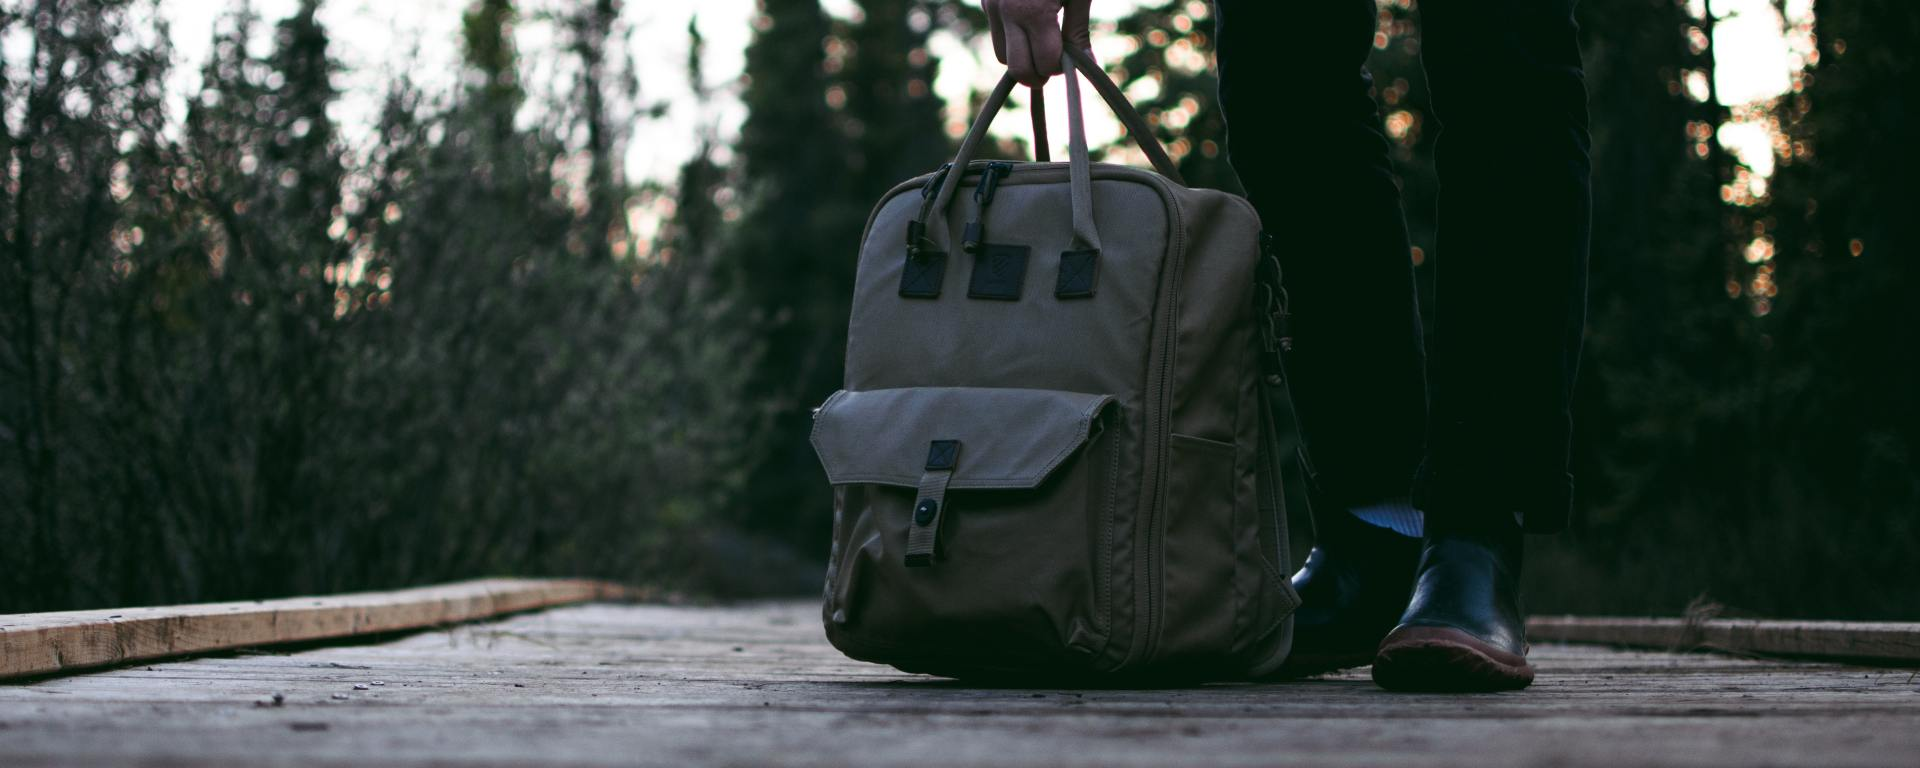 An image of a man's hand holding a backpack, resting on a wooden deck.